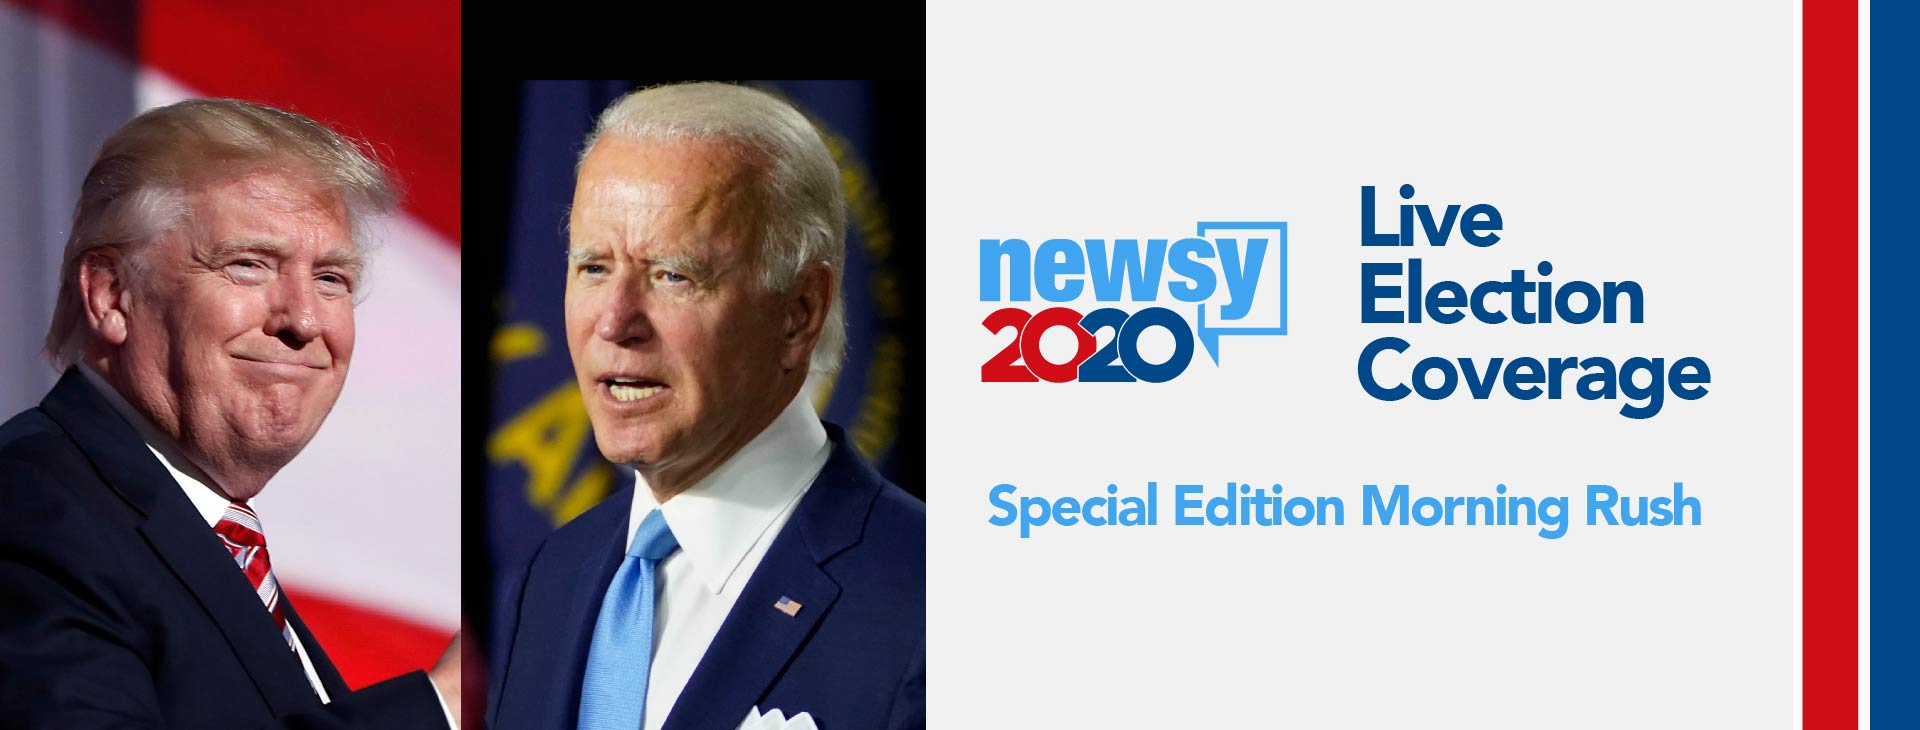 Newsy 2020: Special Edition Morning Rush